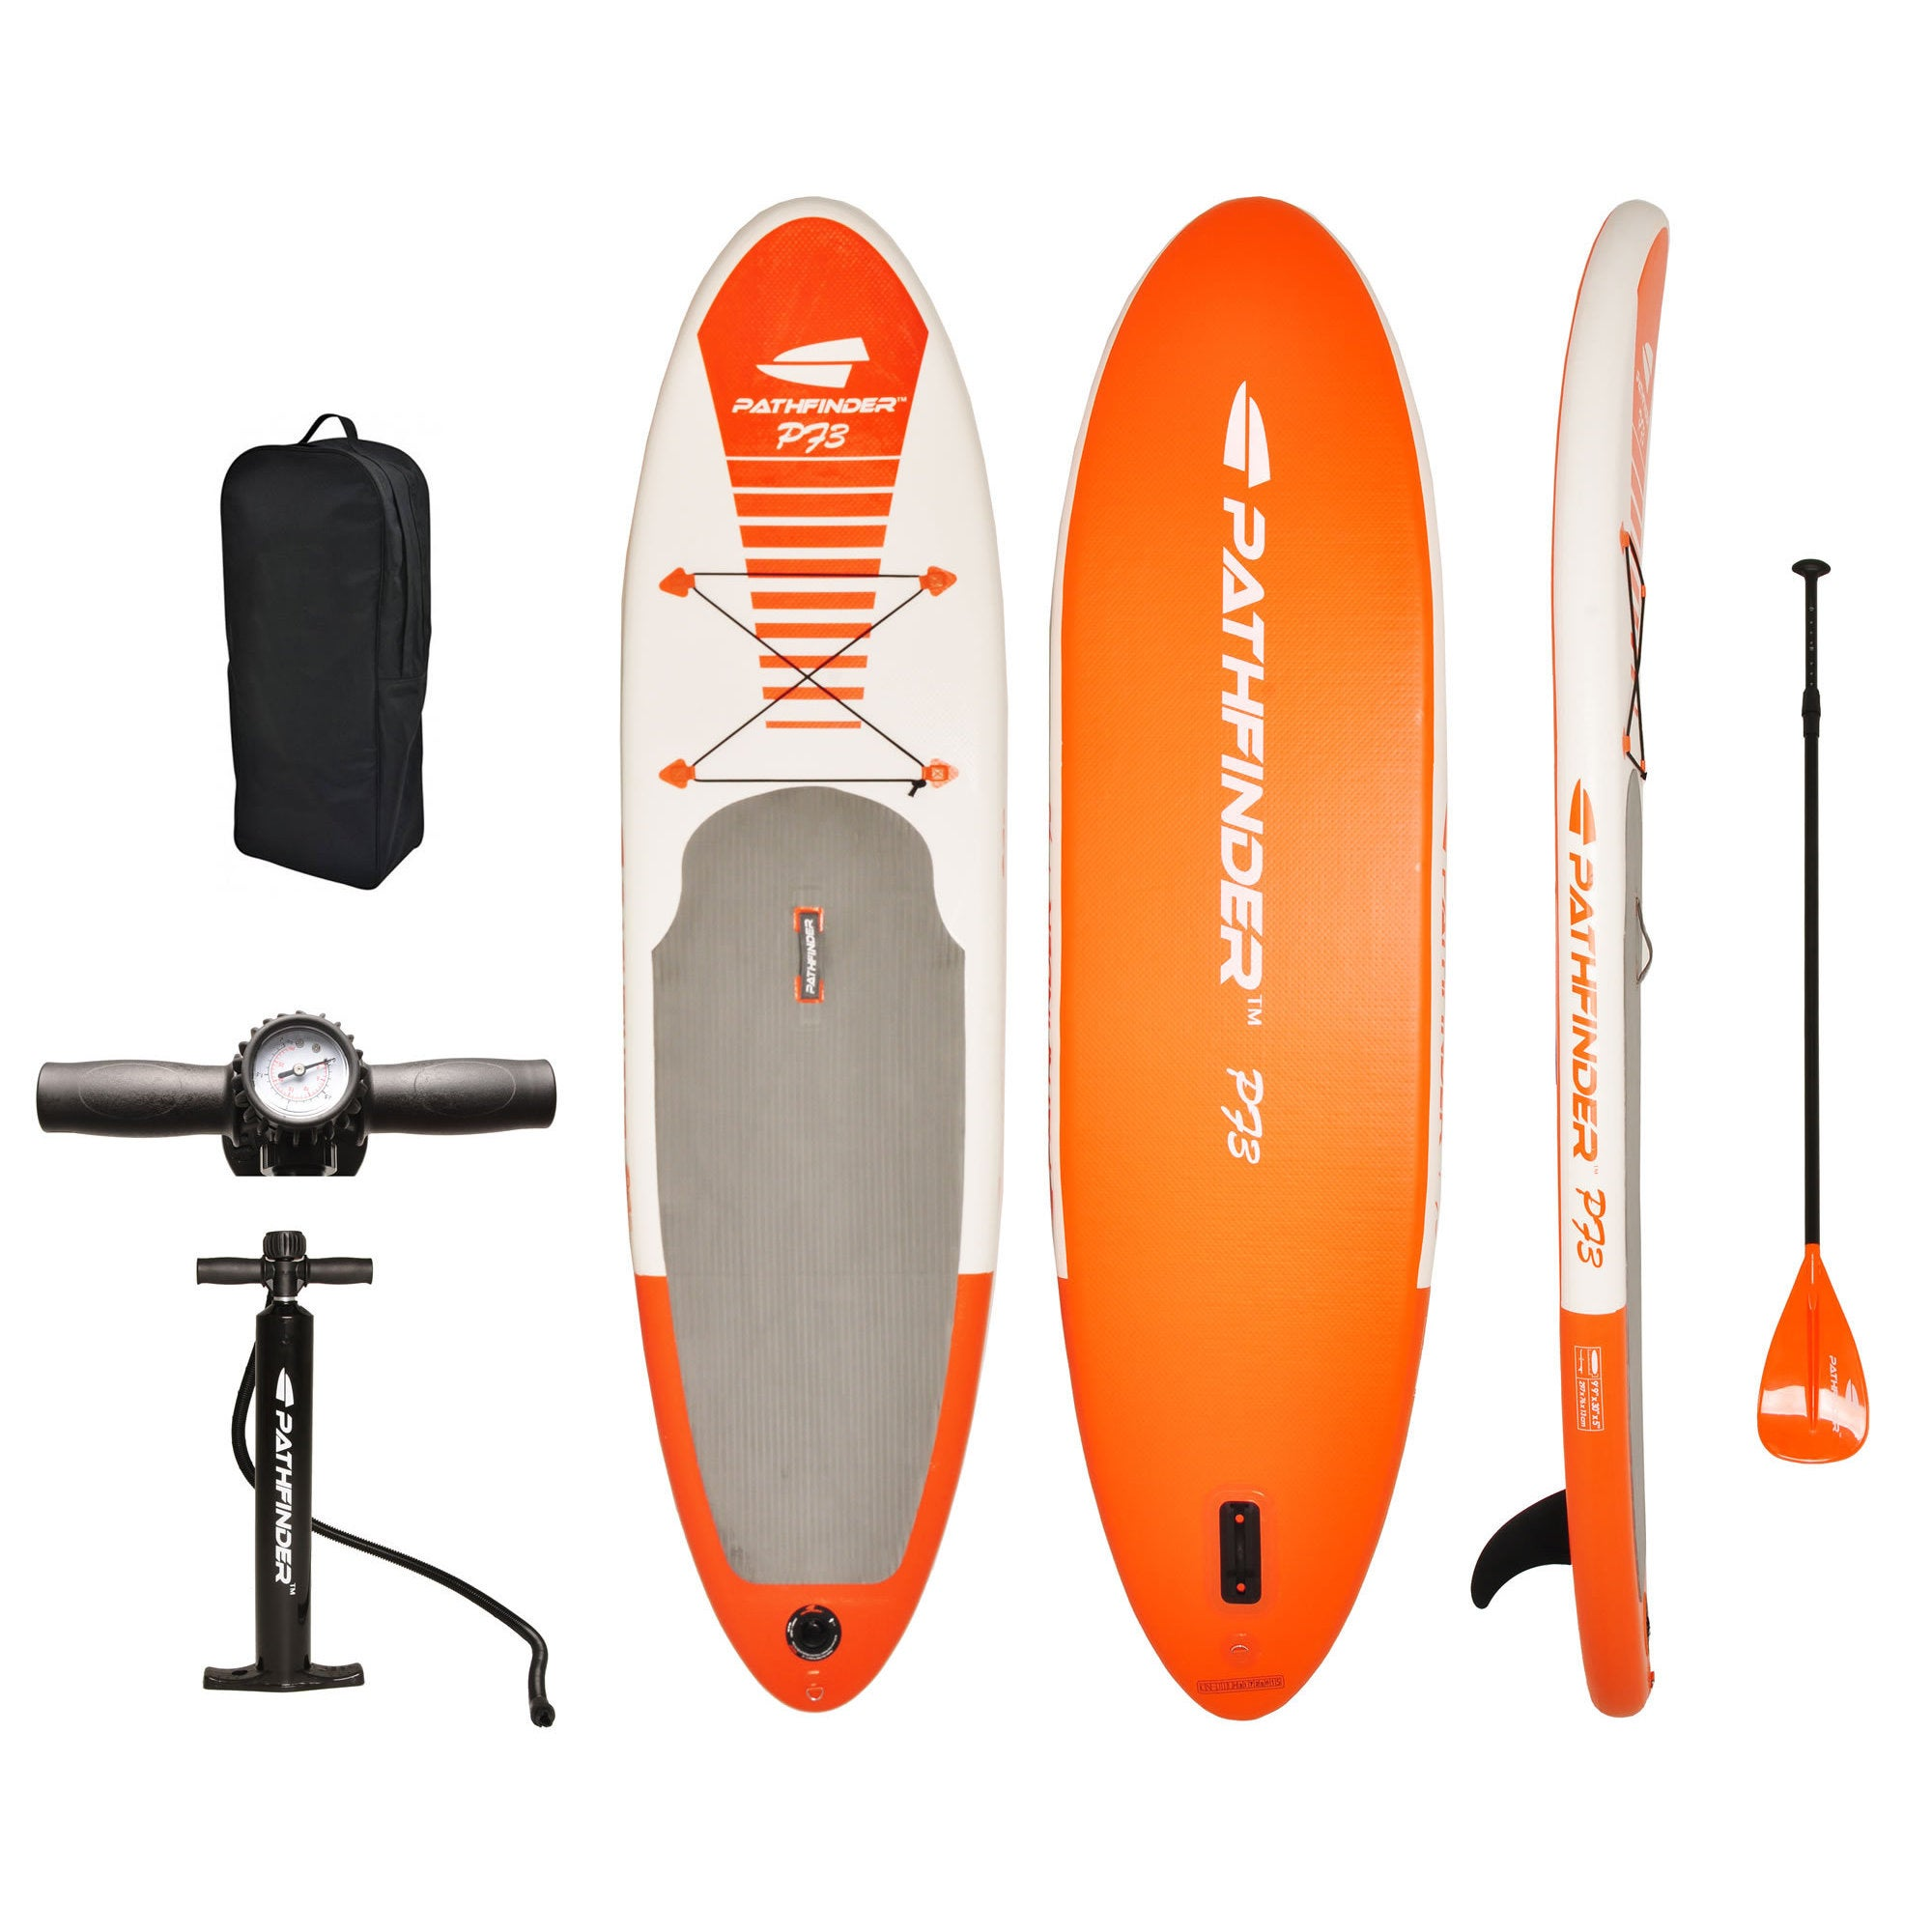 Pathfinder Paddle Board